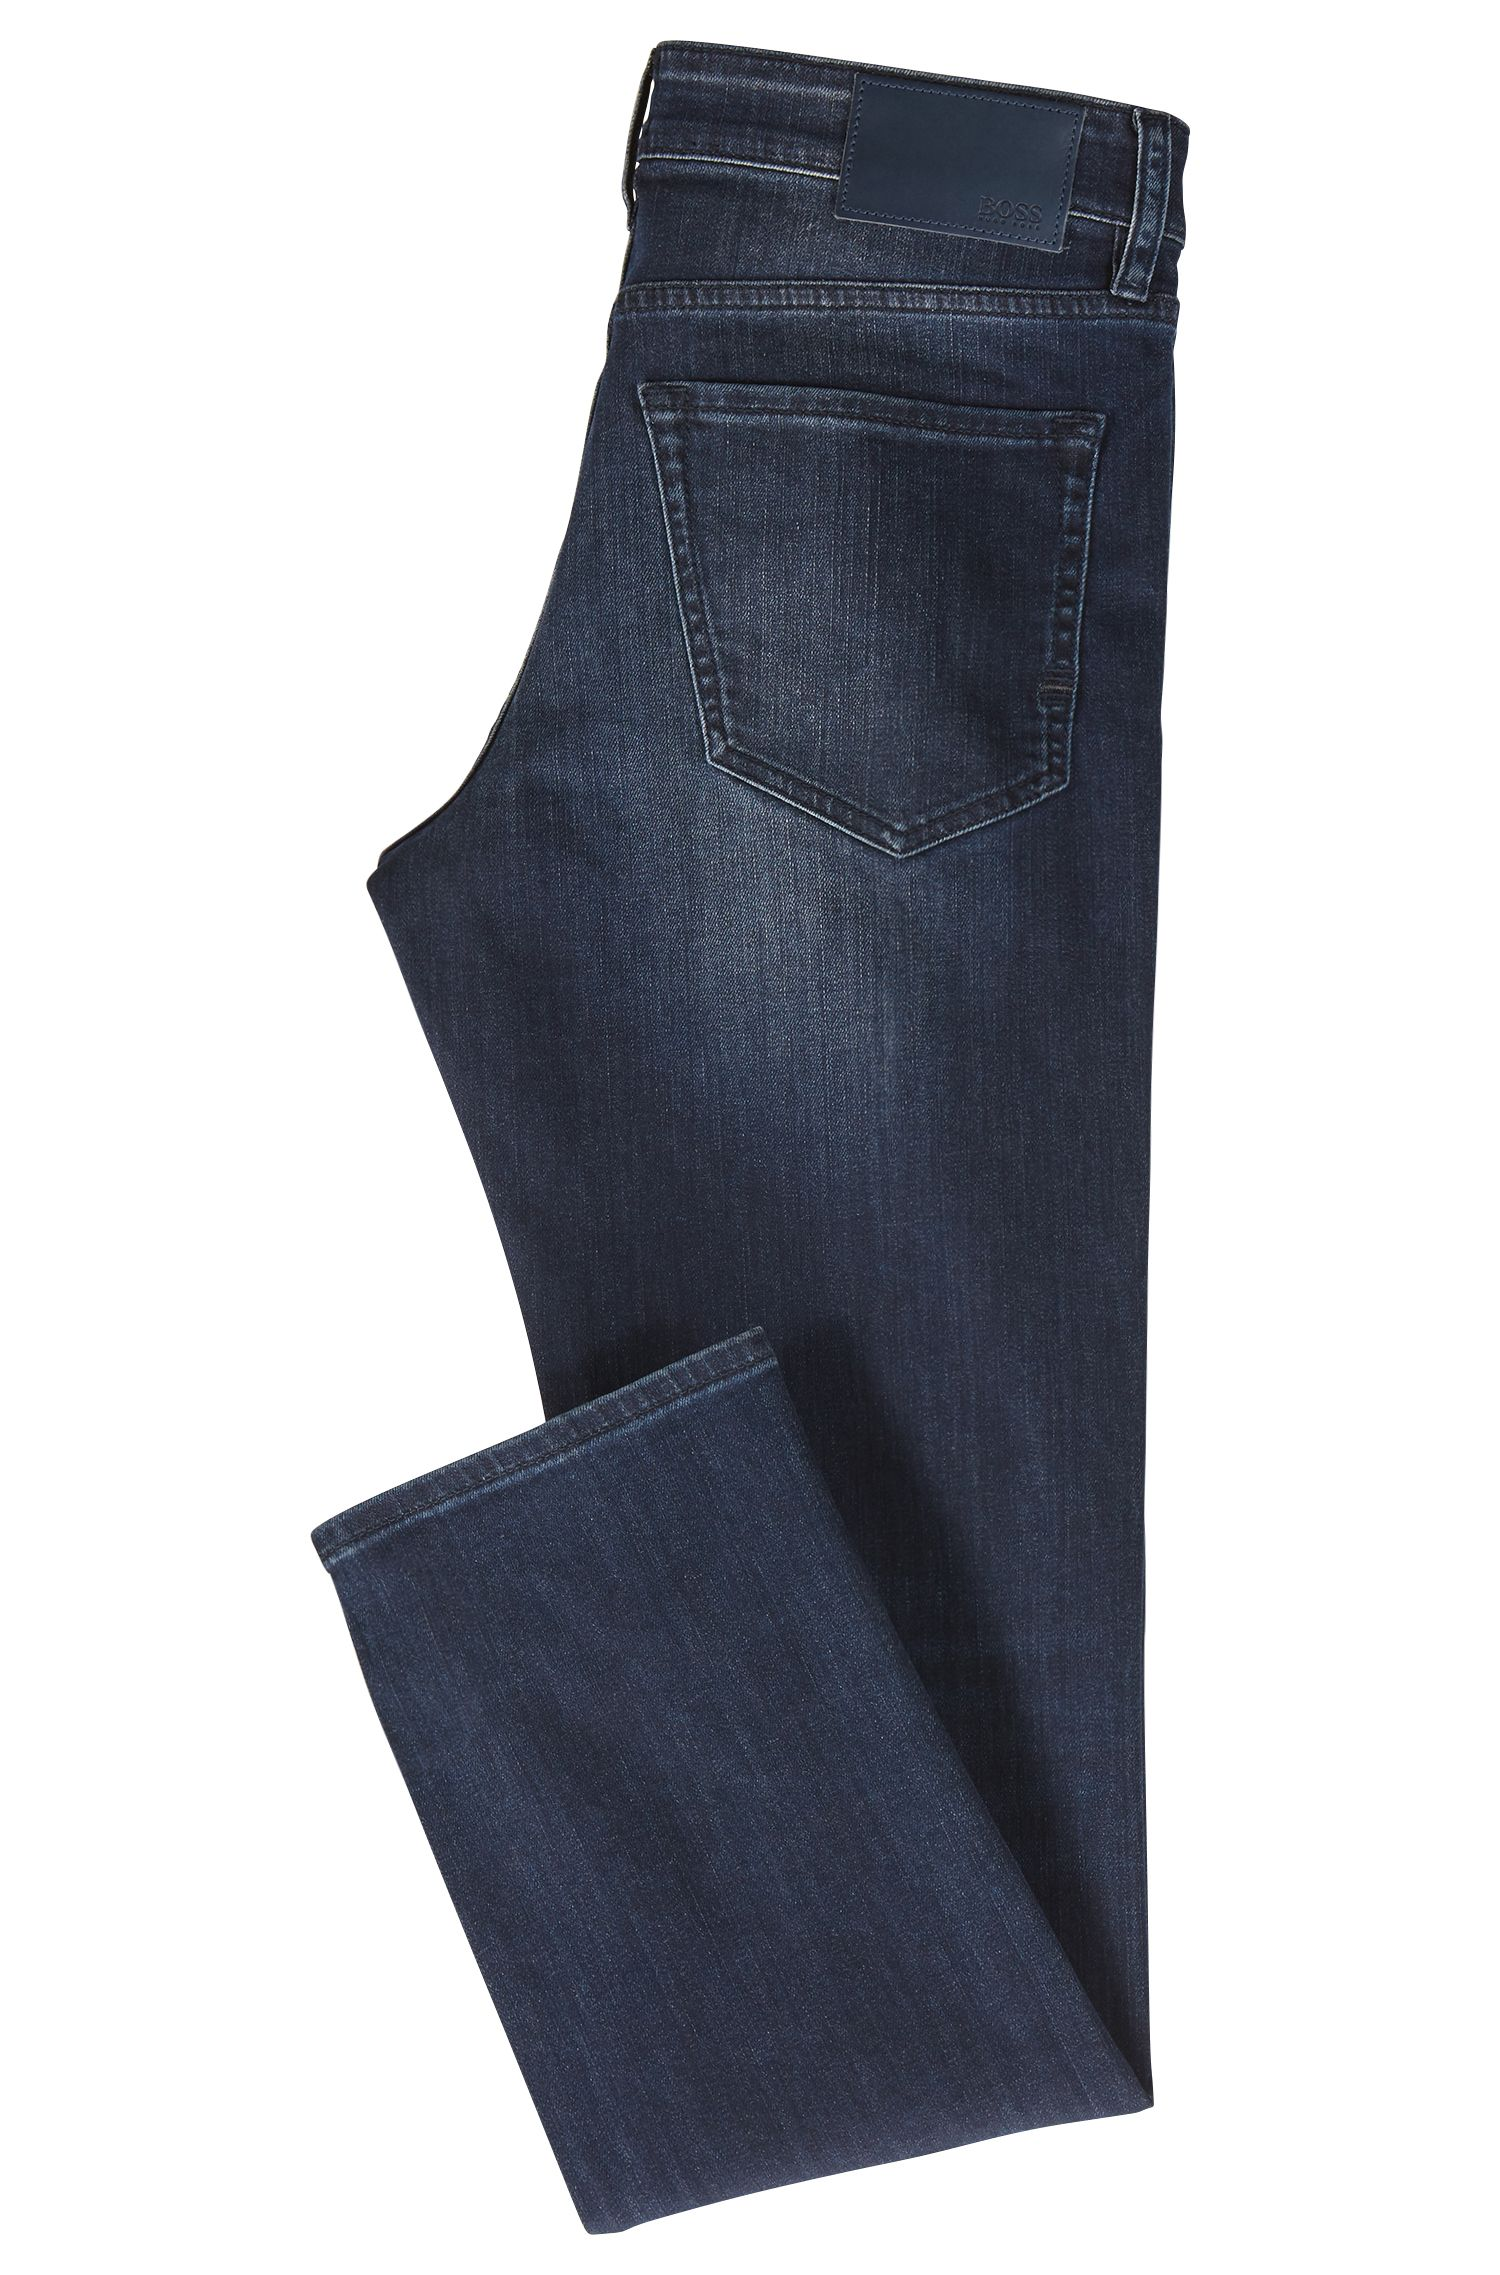 Regular-Fit Jeans aus elastischem Stone-washed Denim, Blau